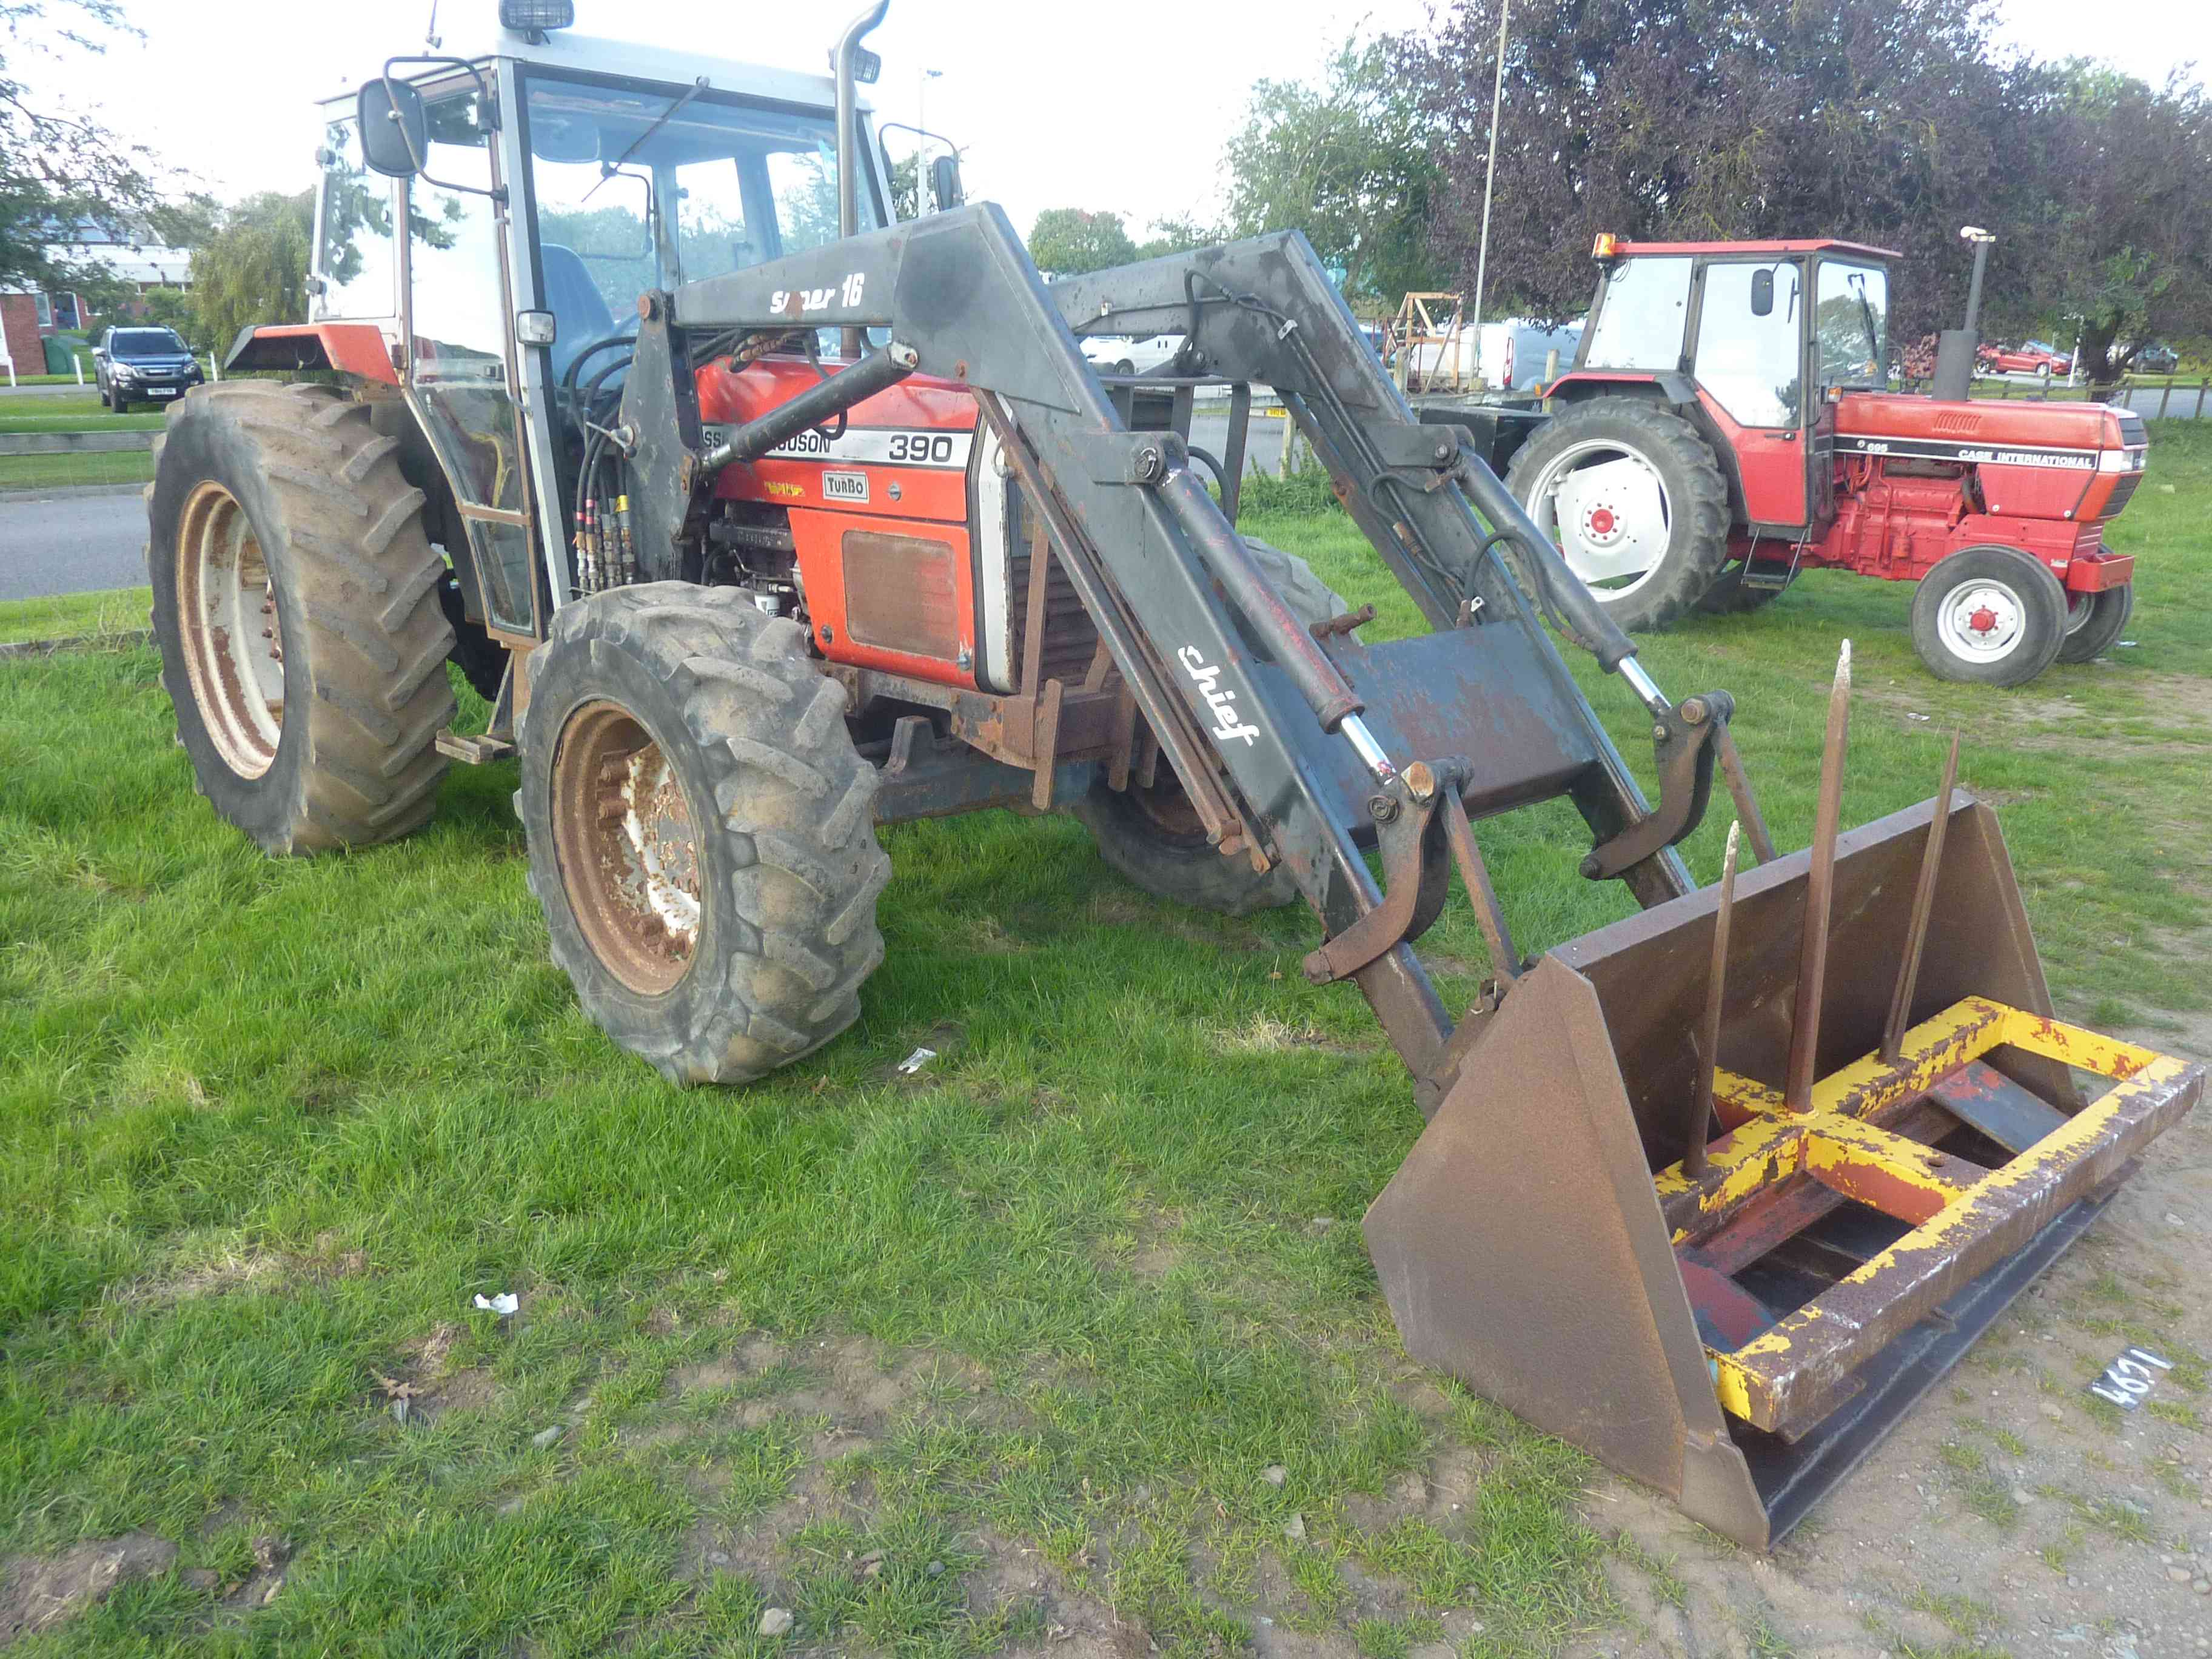 Lot 4621 - 4621 Massey Ferguson 390 tractor with Chief loader, bucket &  fork,